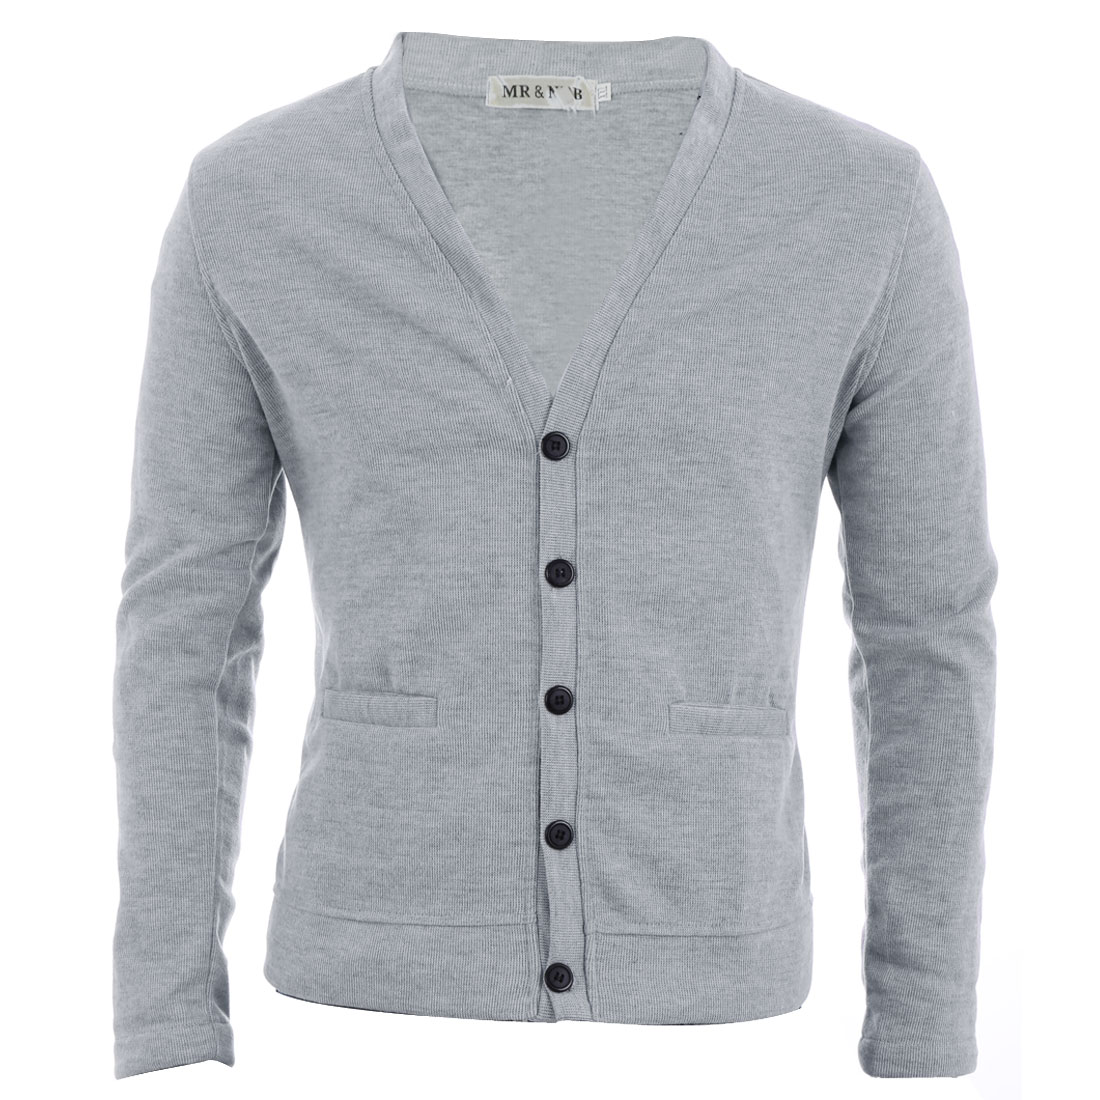 Man Chic V Neck Single-Breasted Front Light Gray Knitted Cardigan M